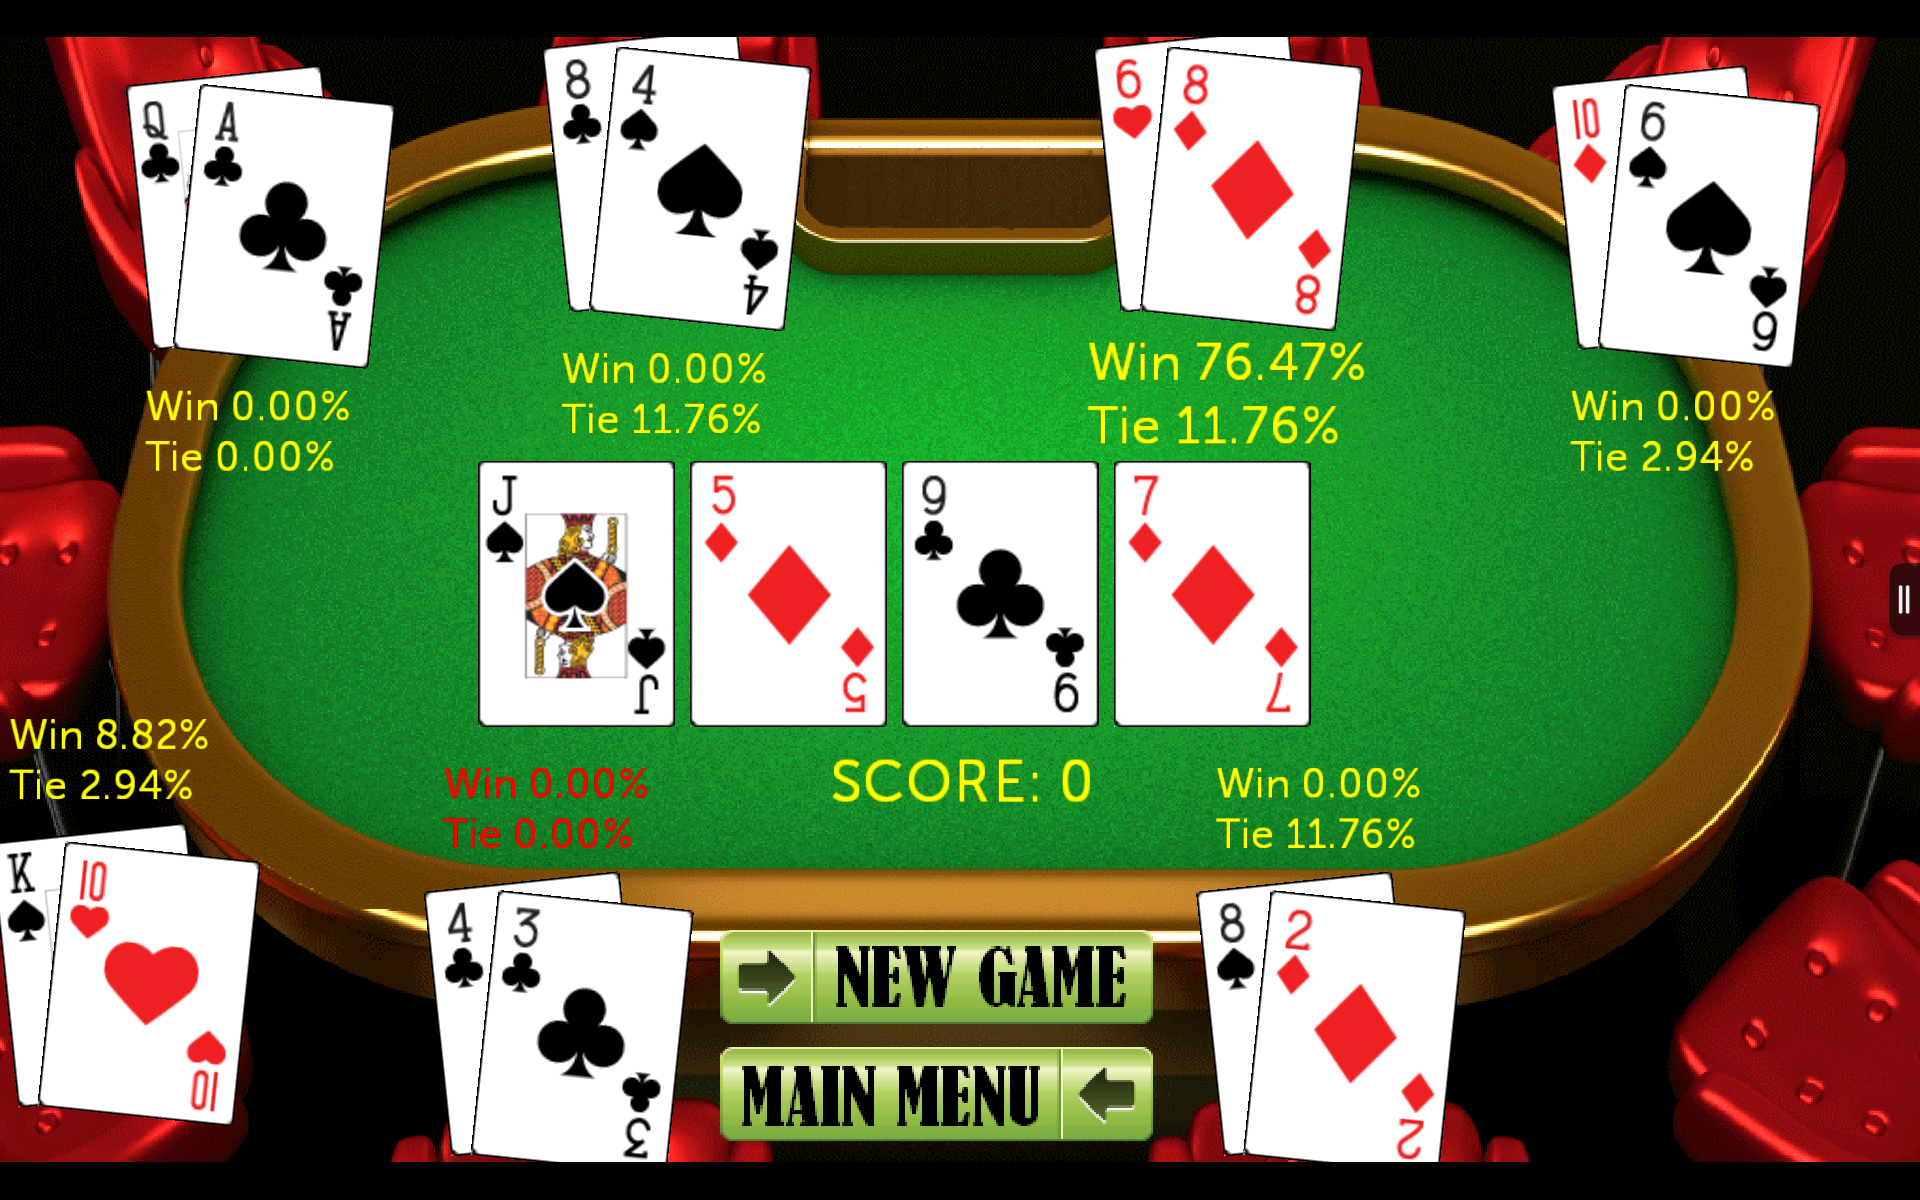 Amazon.com: Poker Master (Poker Game): Appstore for Android